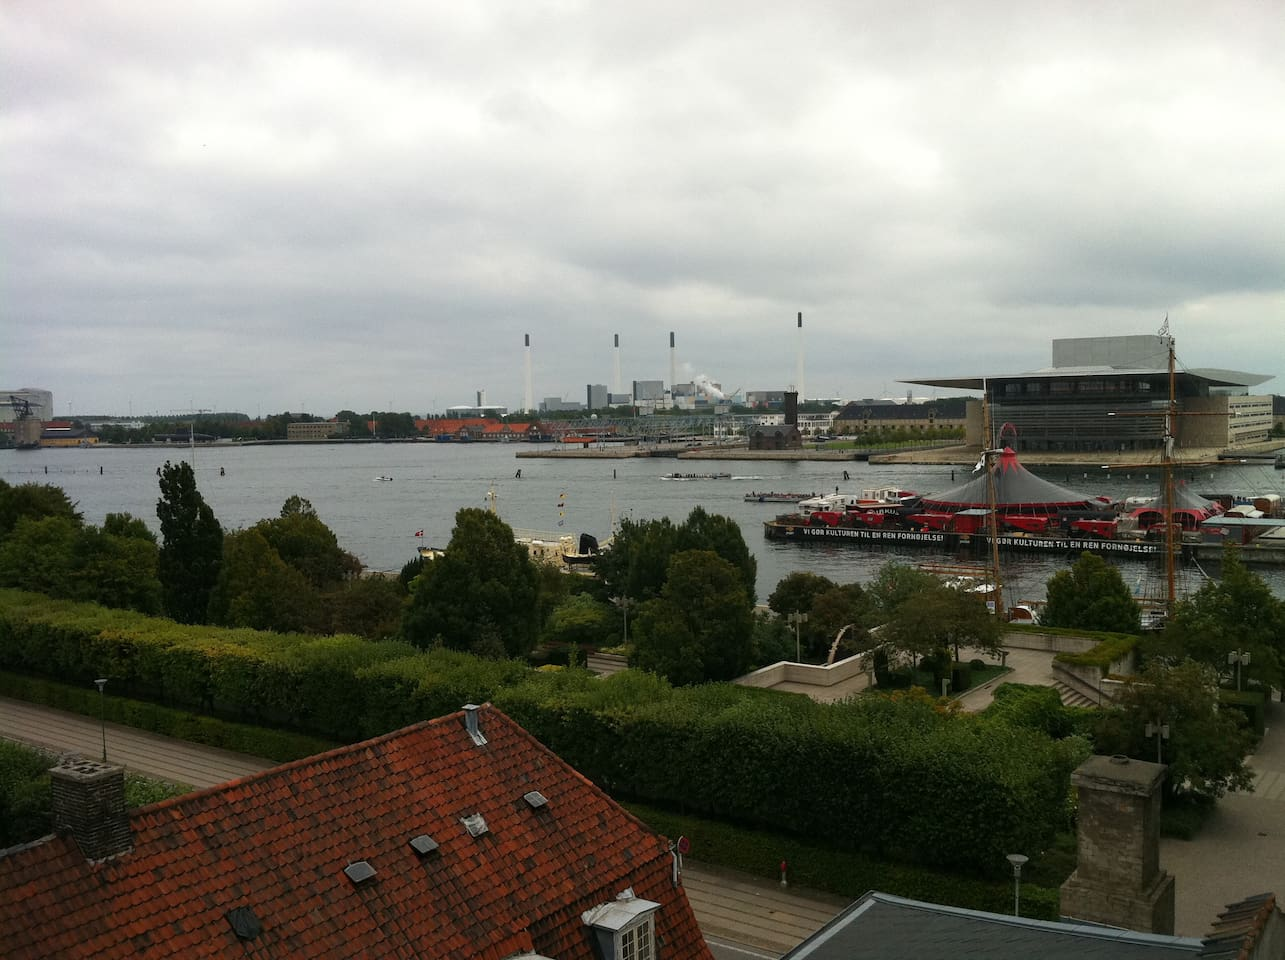 View of the harbor with the Opera house in the background on the right.